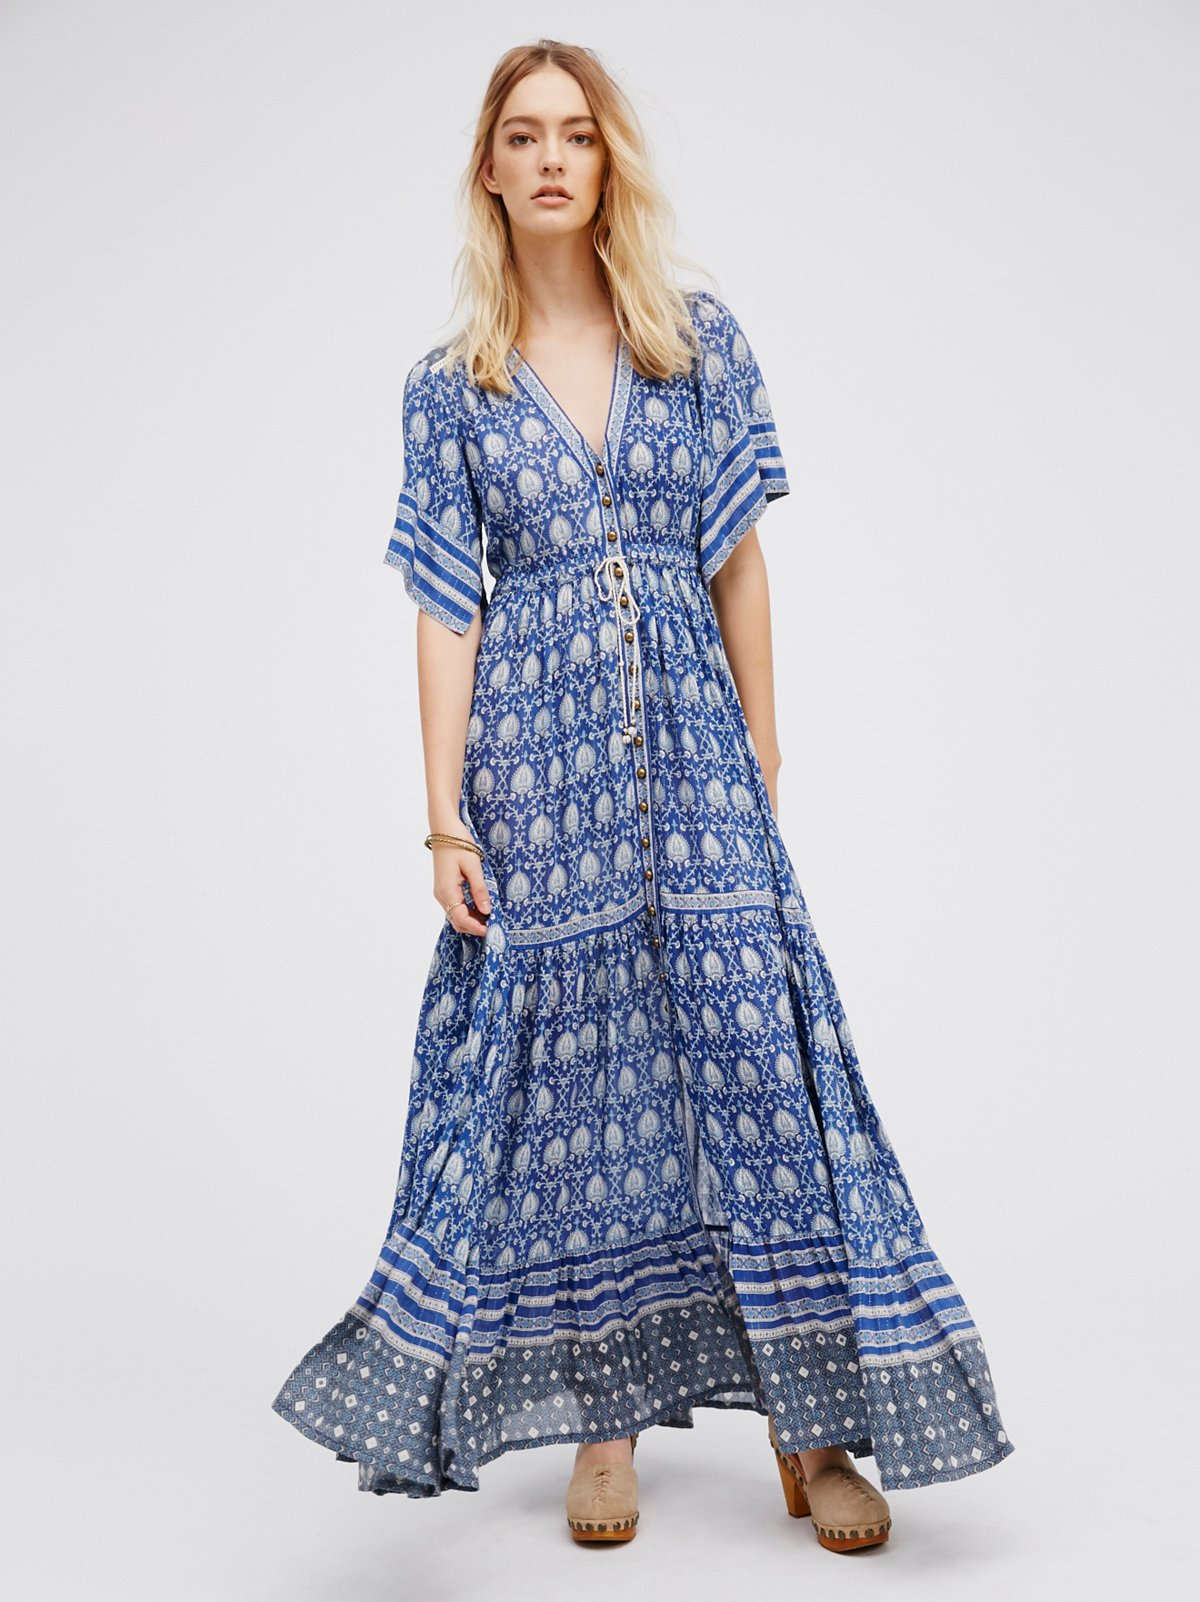 Spell Dress Free People Impossible to Buy For Gift Guide